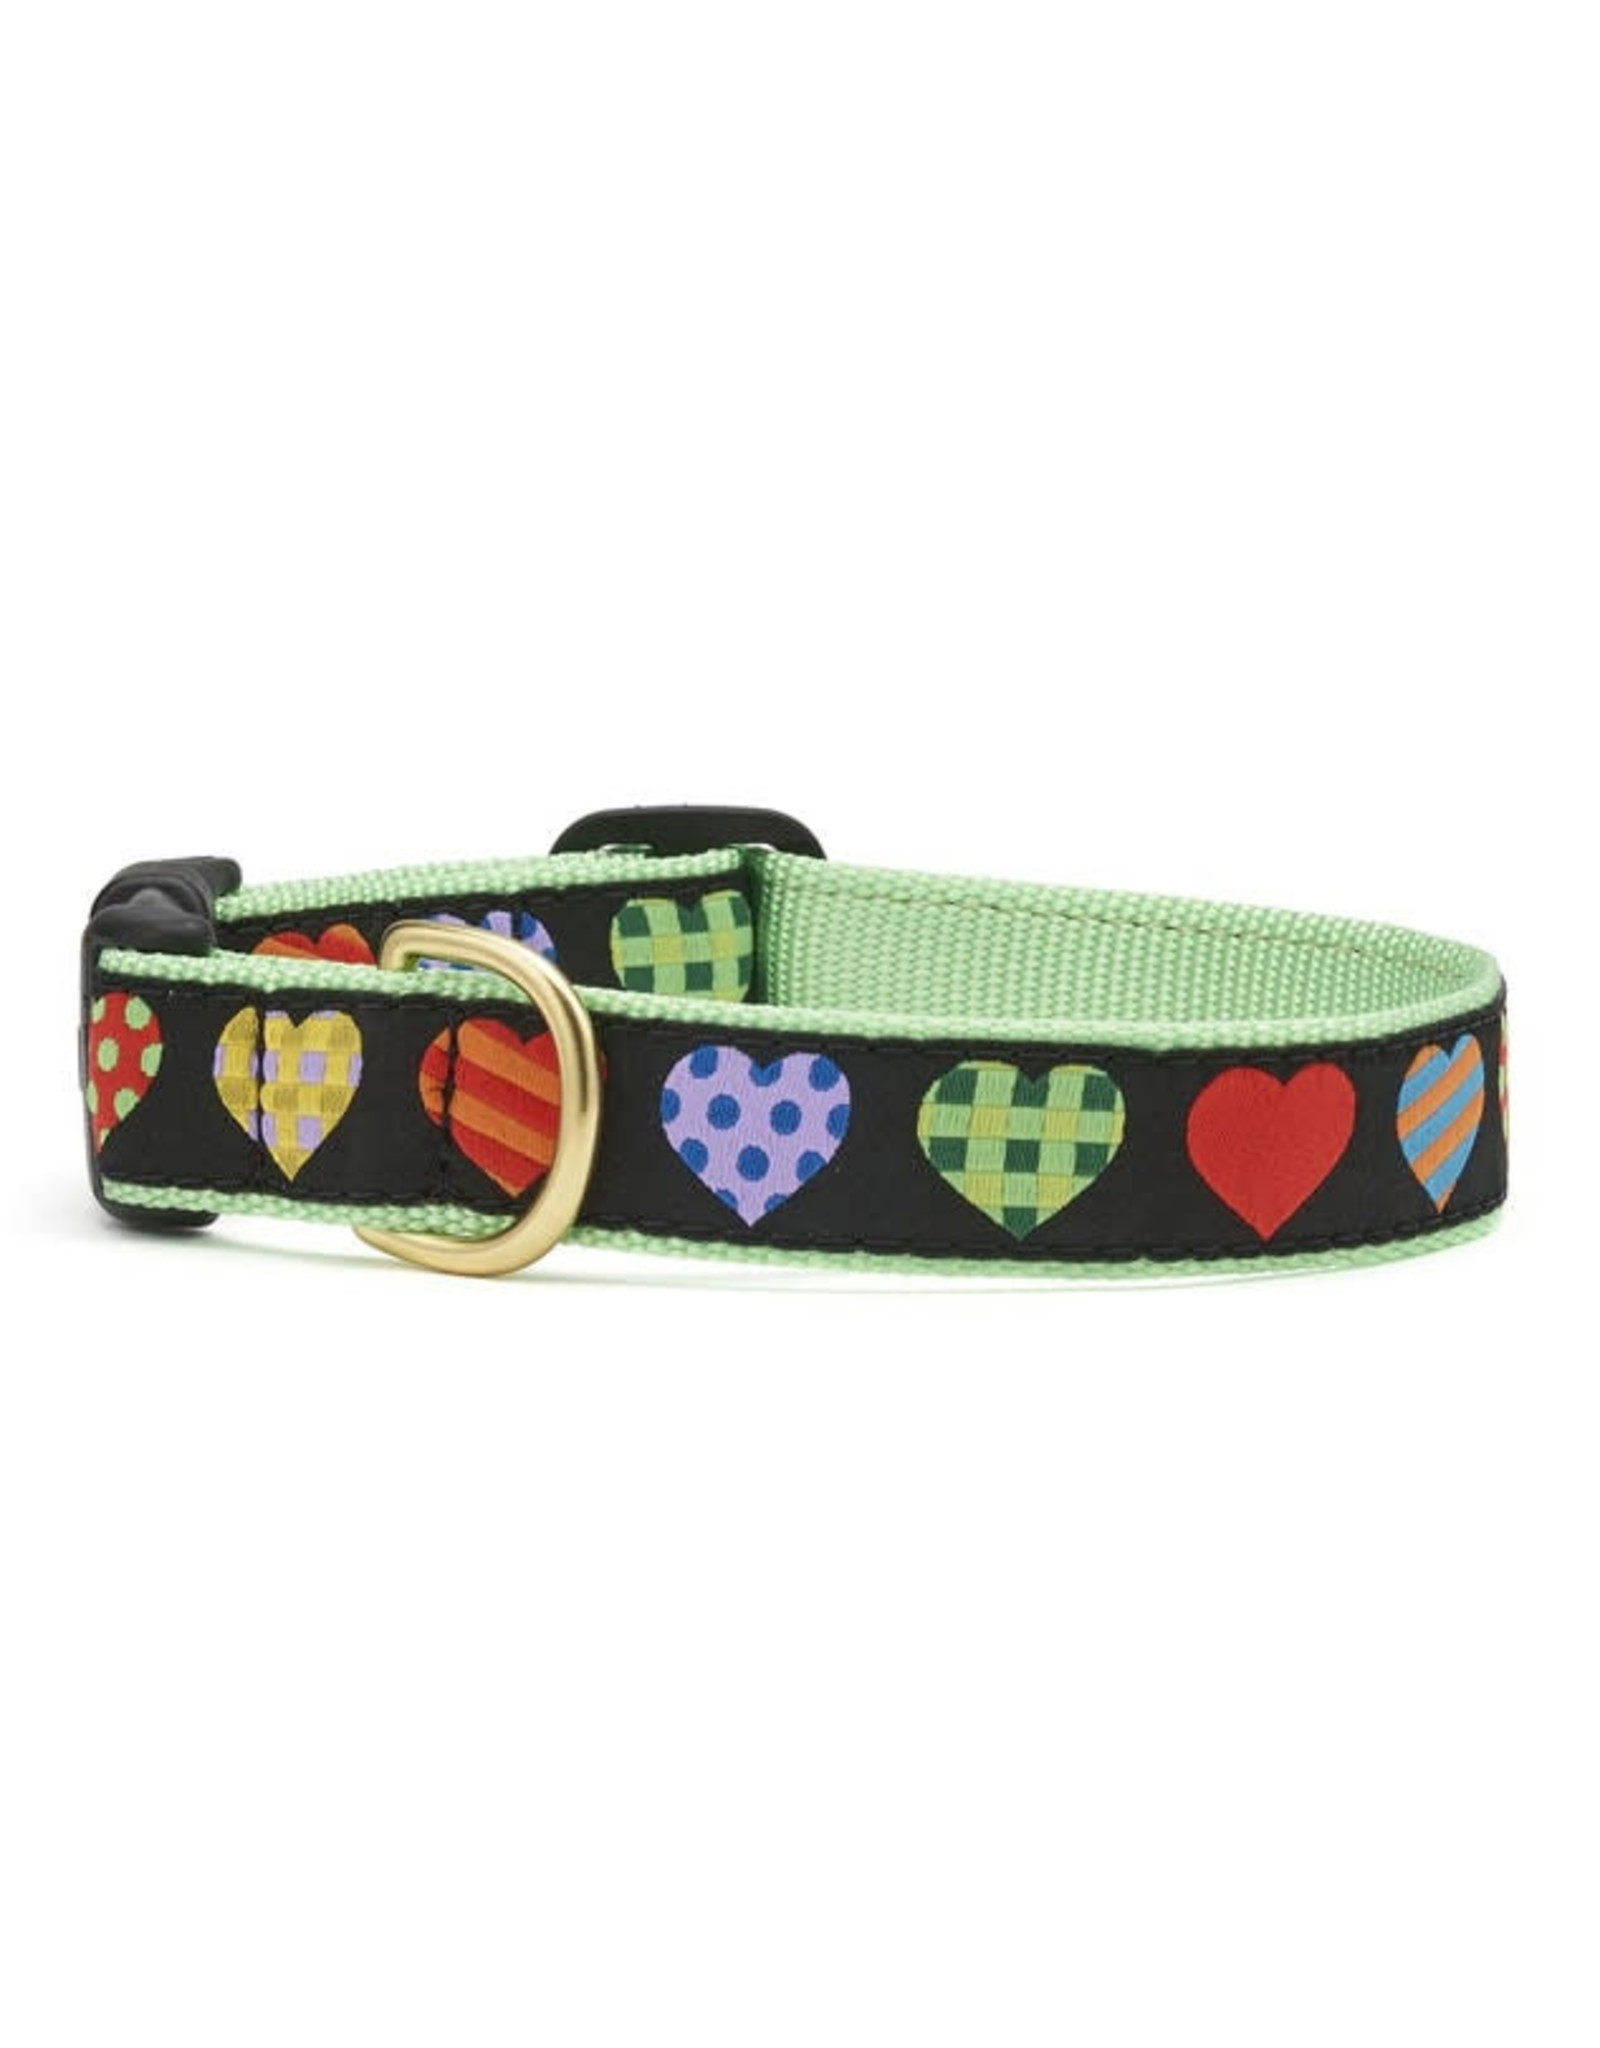 Up Country Colorful Hearts Collar: Narrow, S